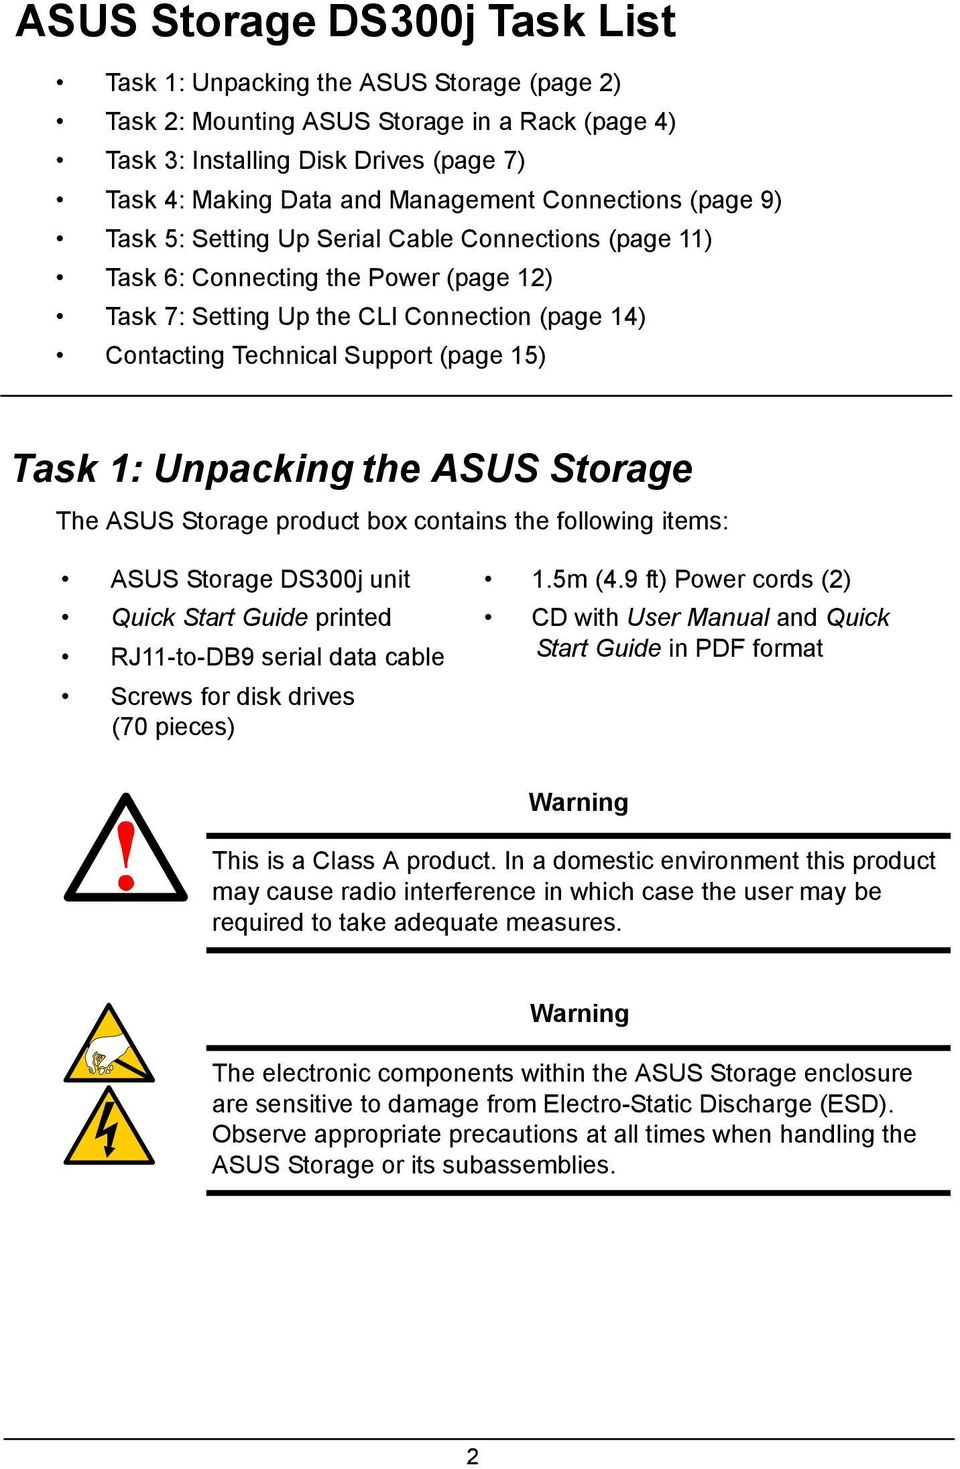 15) Task 1: Unpacking the ASUS Storage The ASUS Storage product box contains the following items: ASUS Storage DS300j unit Quick Start Guide printed RJ11-to-DB9 serial data cable Screws for disk